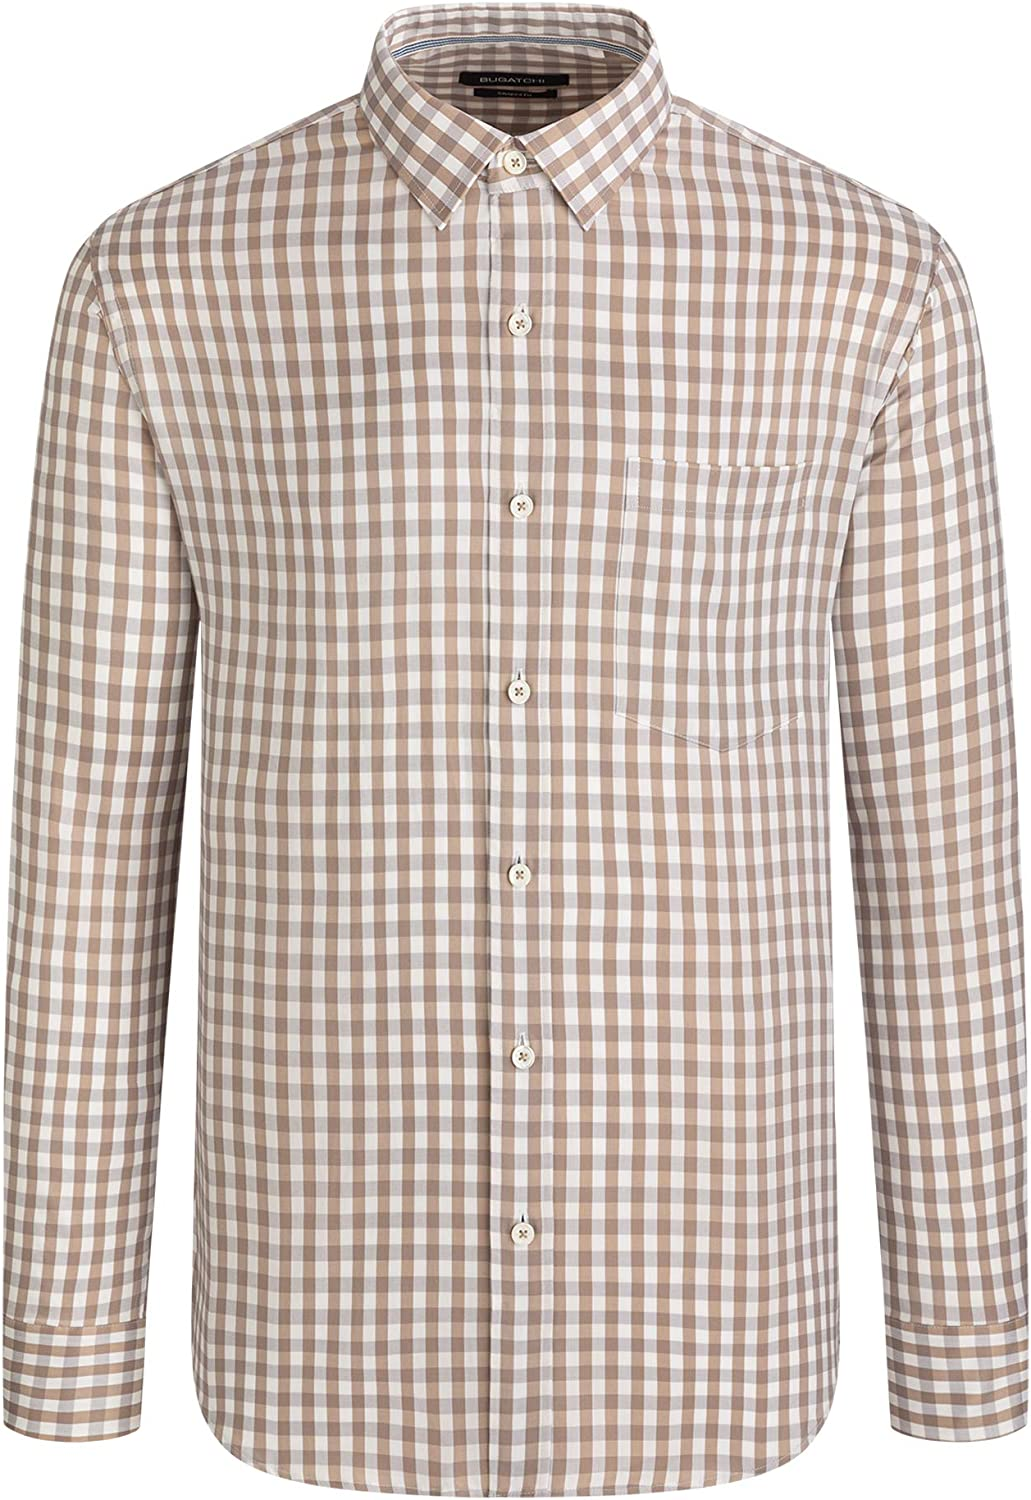 Bugatchi Men's Long Sleeve Small Point Collar Classic Woven